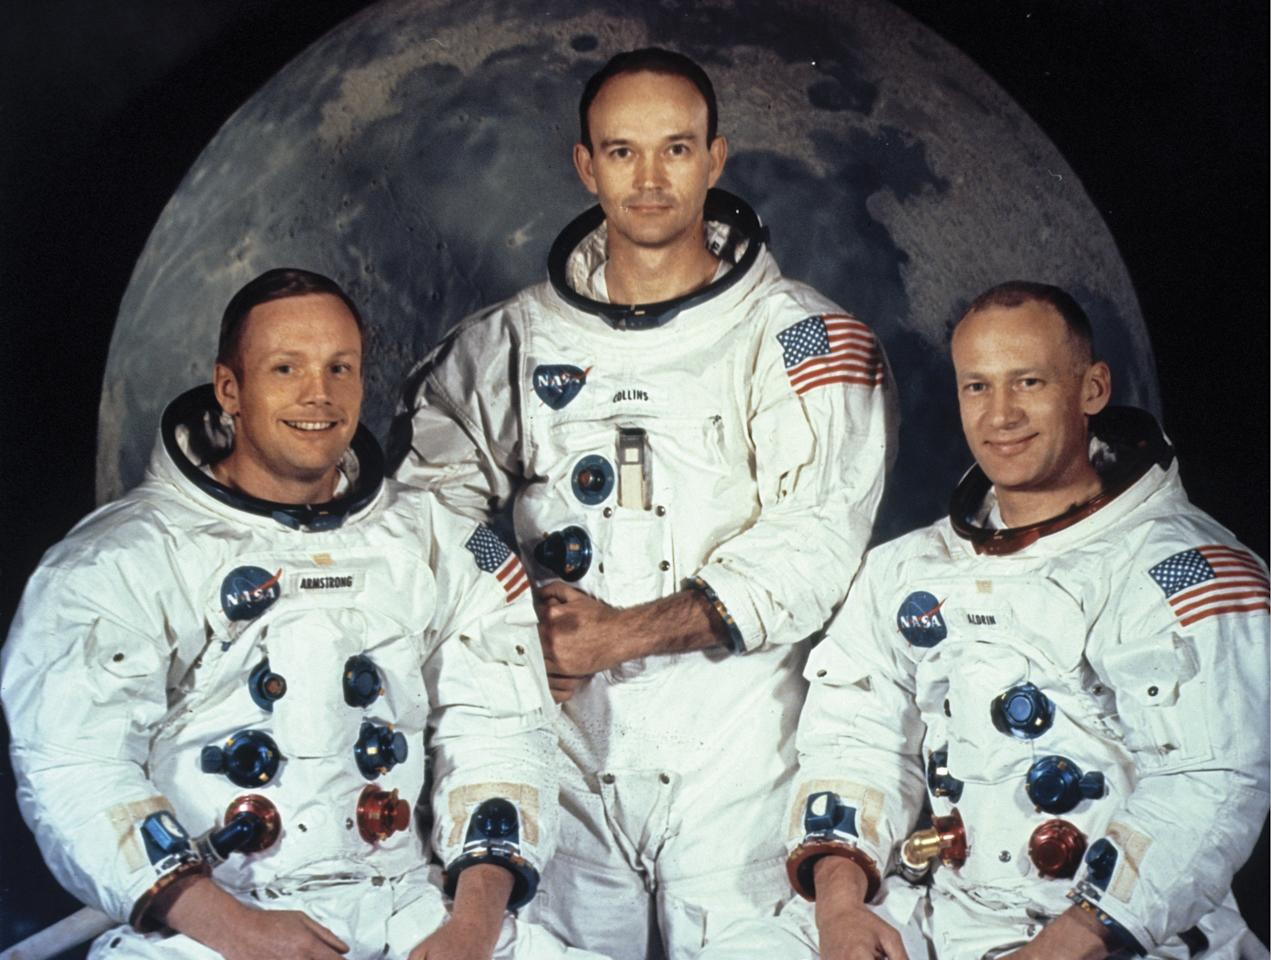 Astronauts Neil Armstrong, Michael Collins, and Buzz Aldrin a few weeks before their mission (Picture: Encyclopaedia Britannica/UIG Via Getty Images)